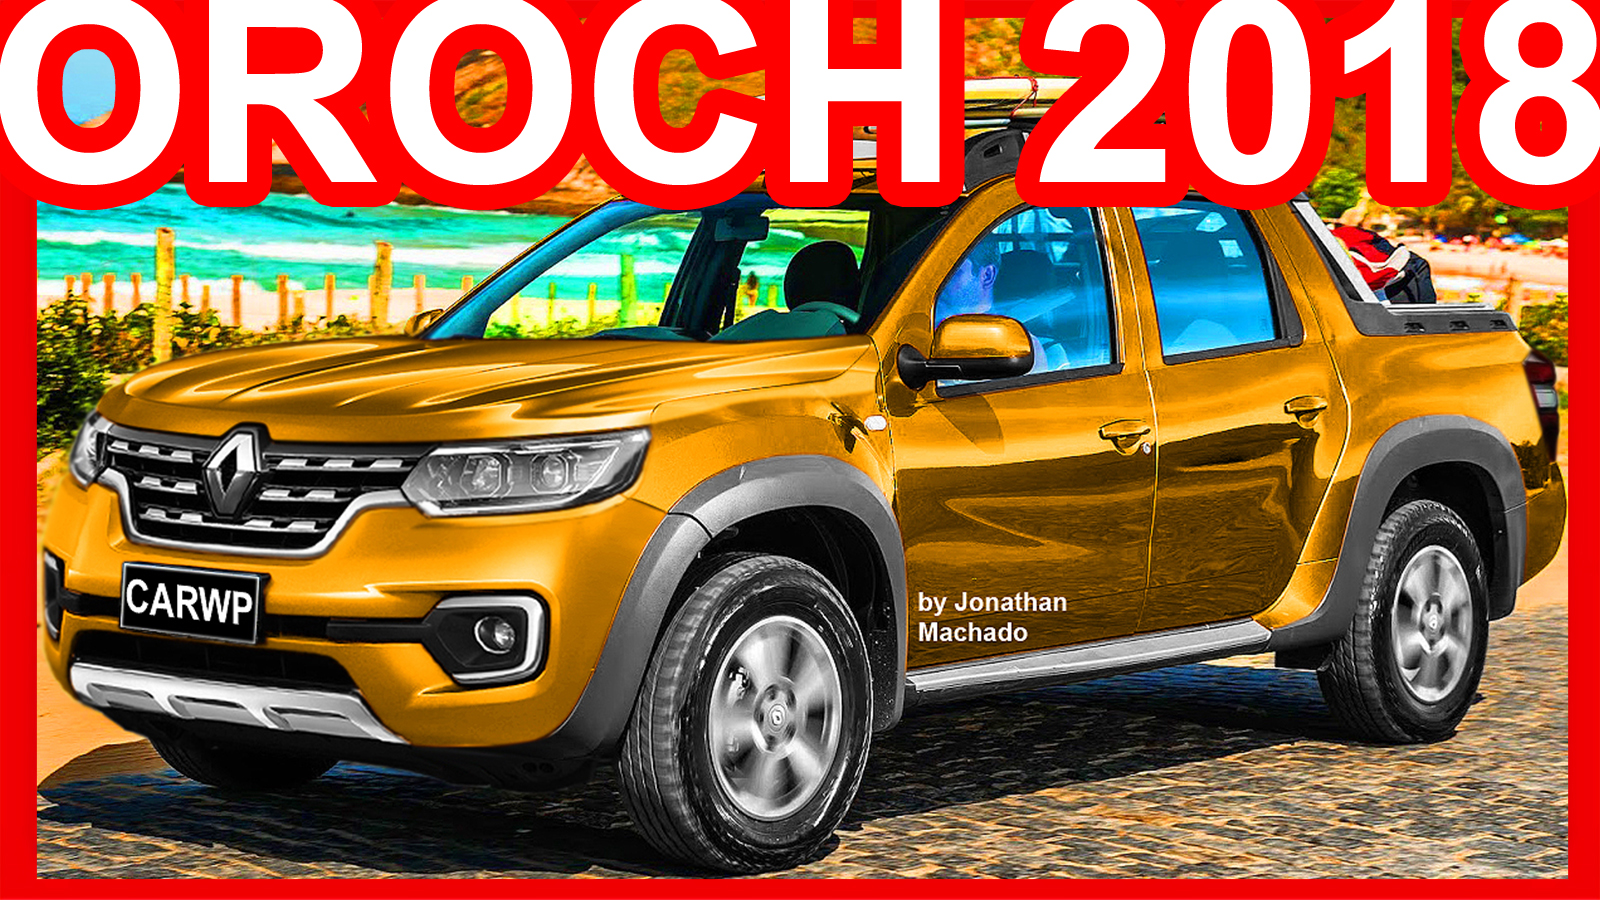 jms renault duster oroch 2018 facelift duster carwp. Black Bedroom Furniture Sets. Home Design Ideas